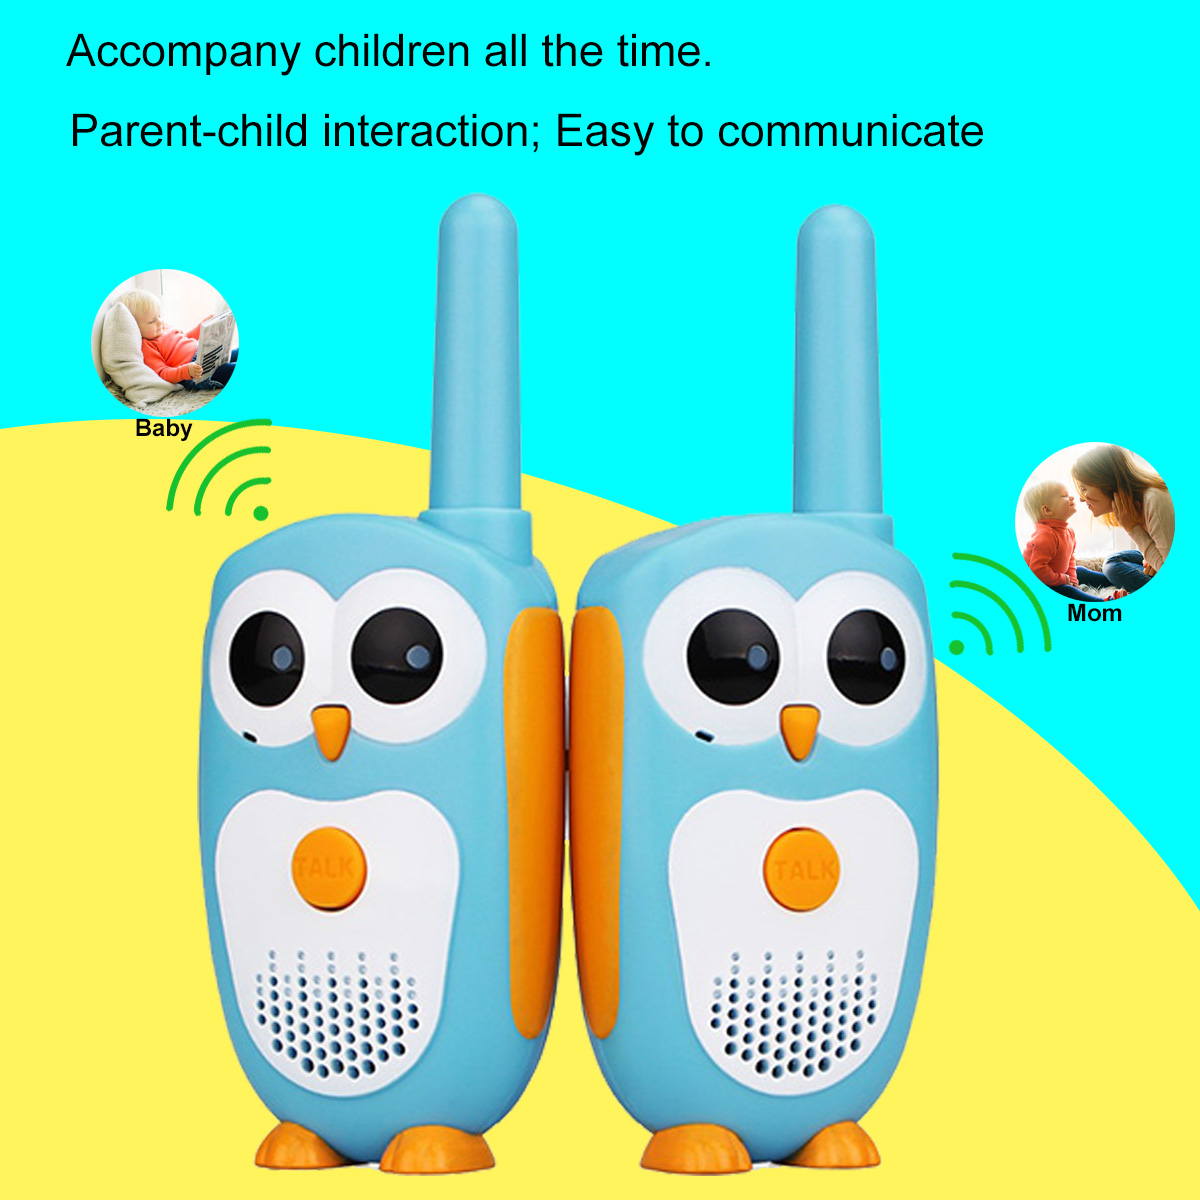 Image 2 - 2pcs Retevis RT30 Mini Walkie Talkie Kids Radio Station 0.5W PMR FRS UHF Radio 1 Channel 2 button Simplest Operate For Kids Toy-in Walkie Talkie from Cellphones & Telecommunications